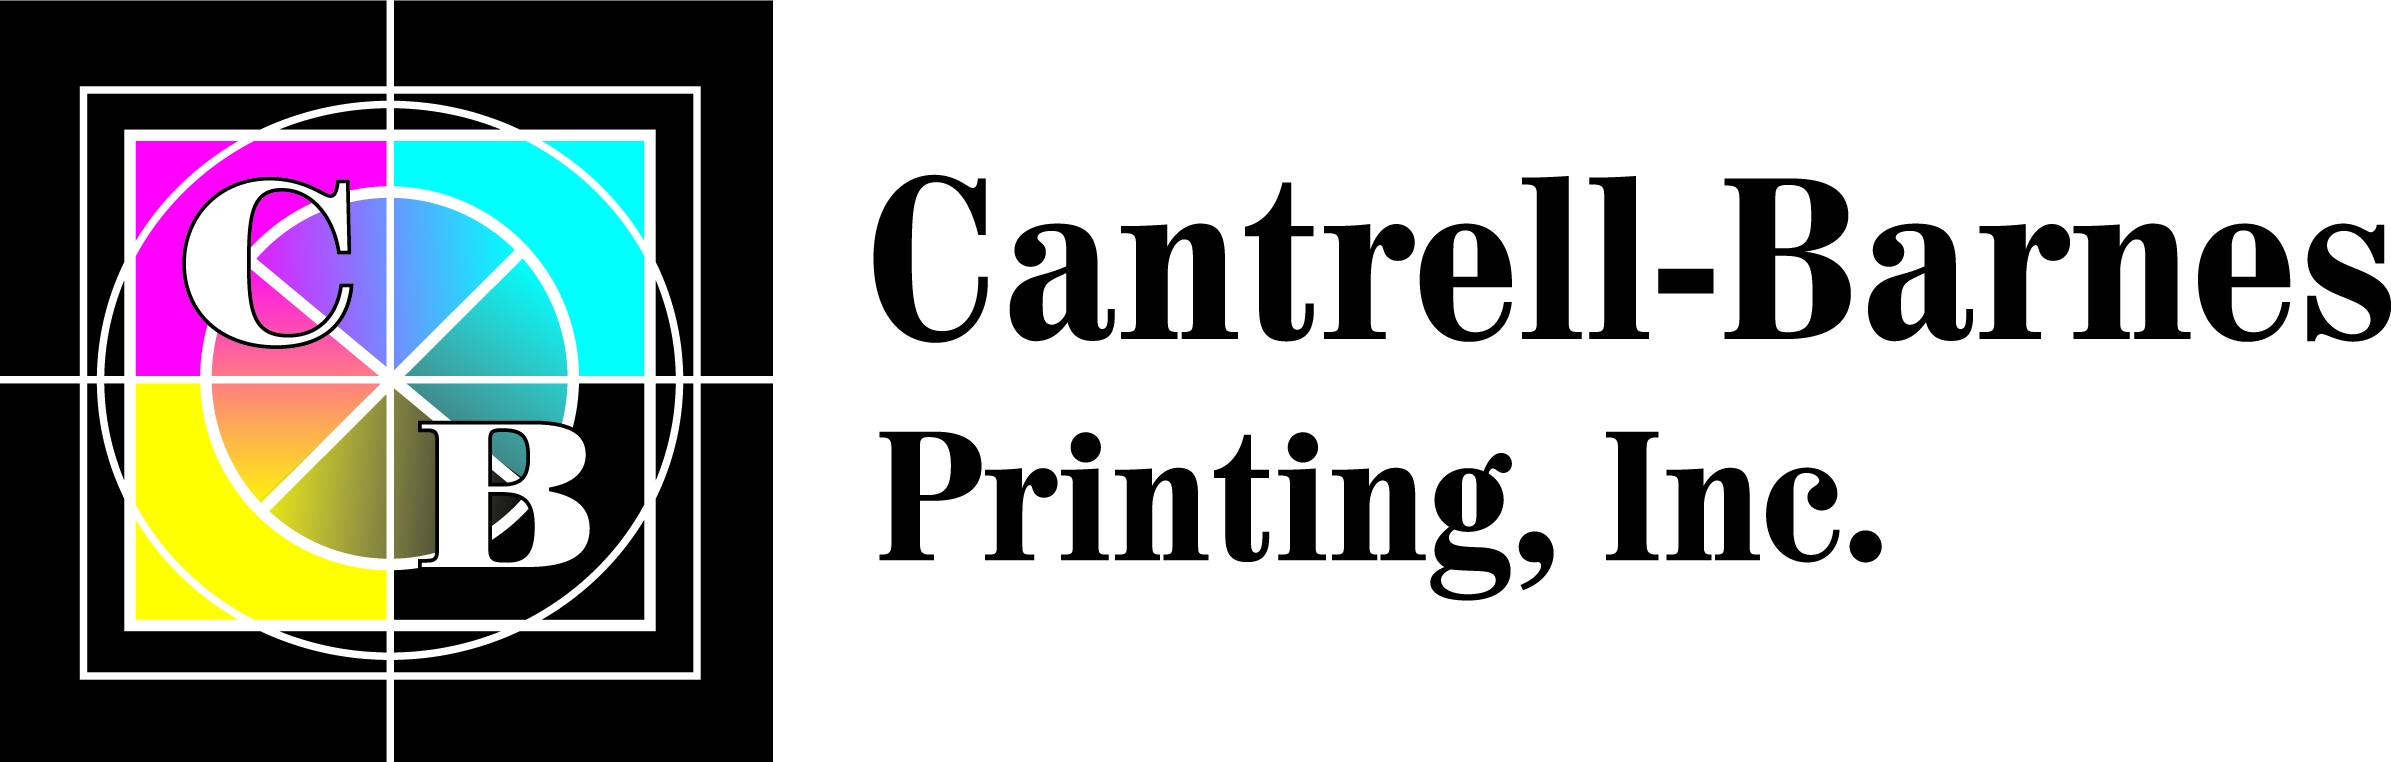 Cantrell Barnes Printing